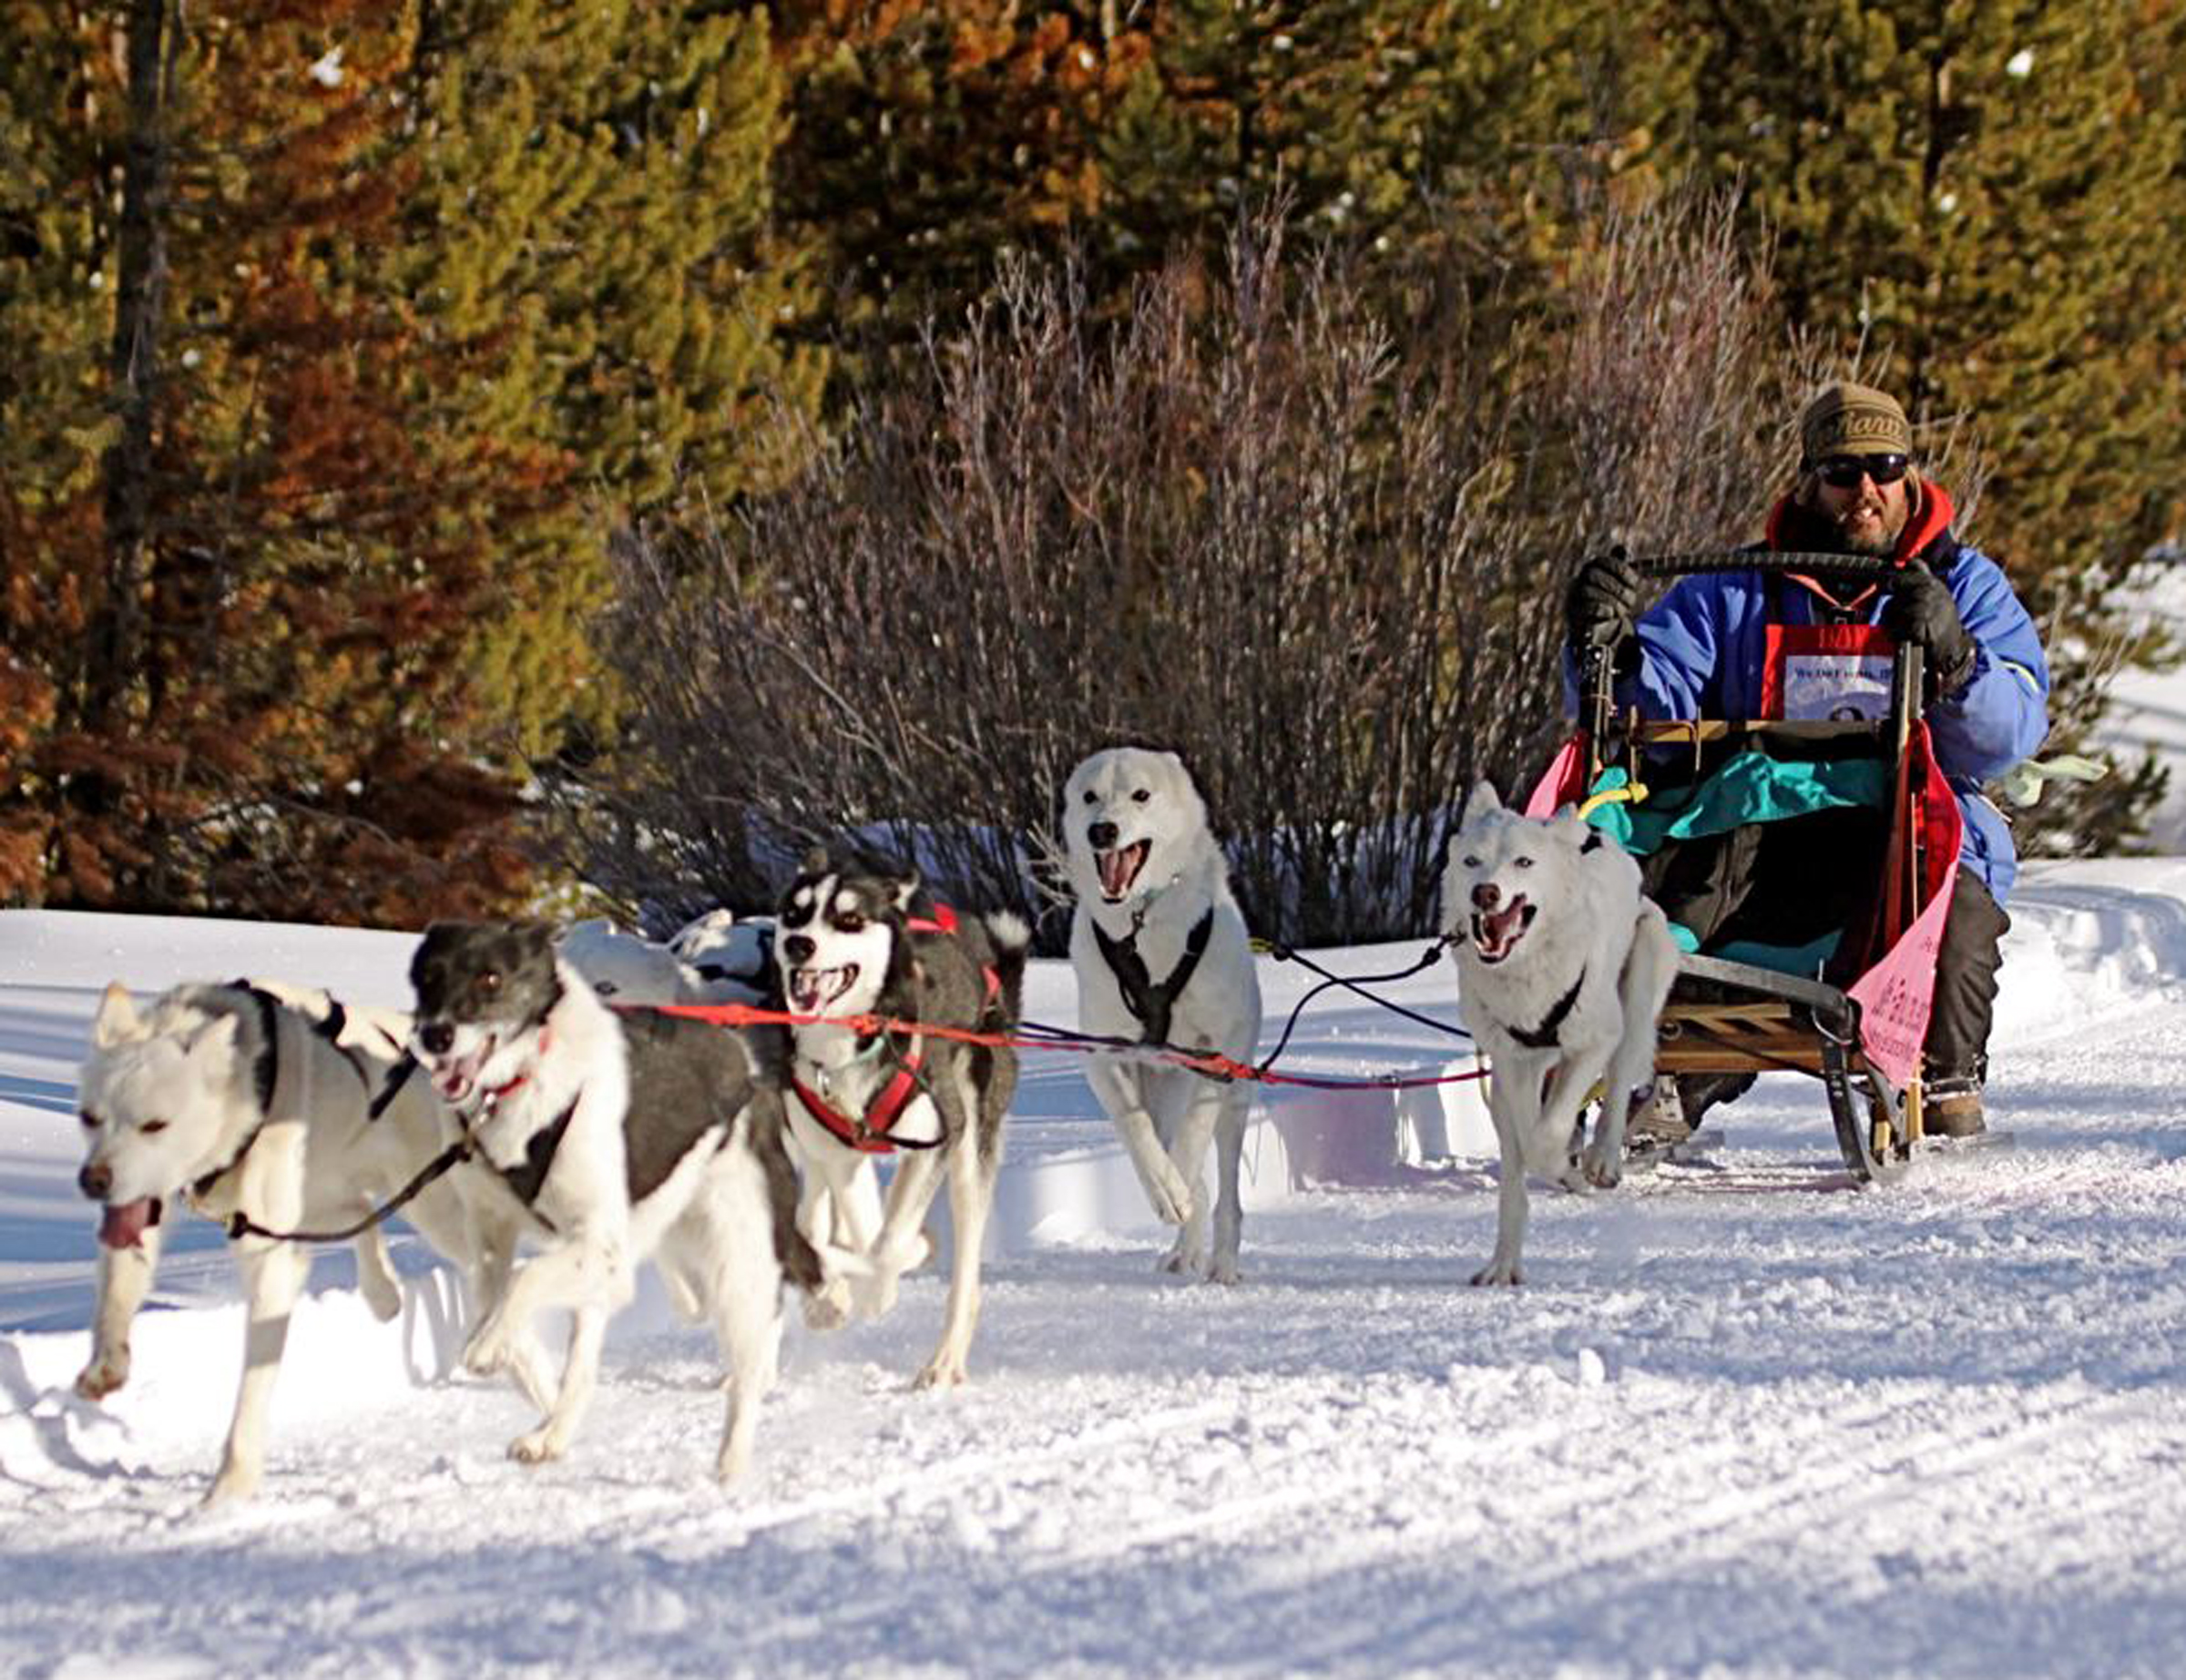 Watch the sled dog races during the Dubois Winterfest February 3-5.